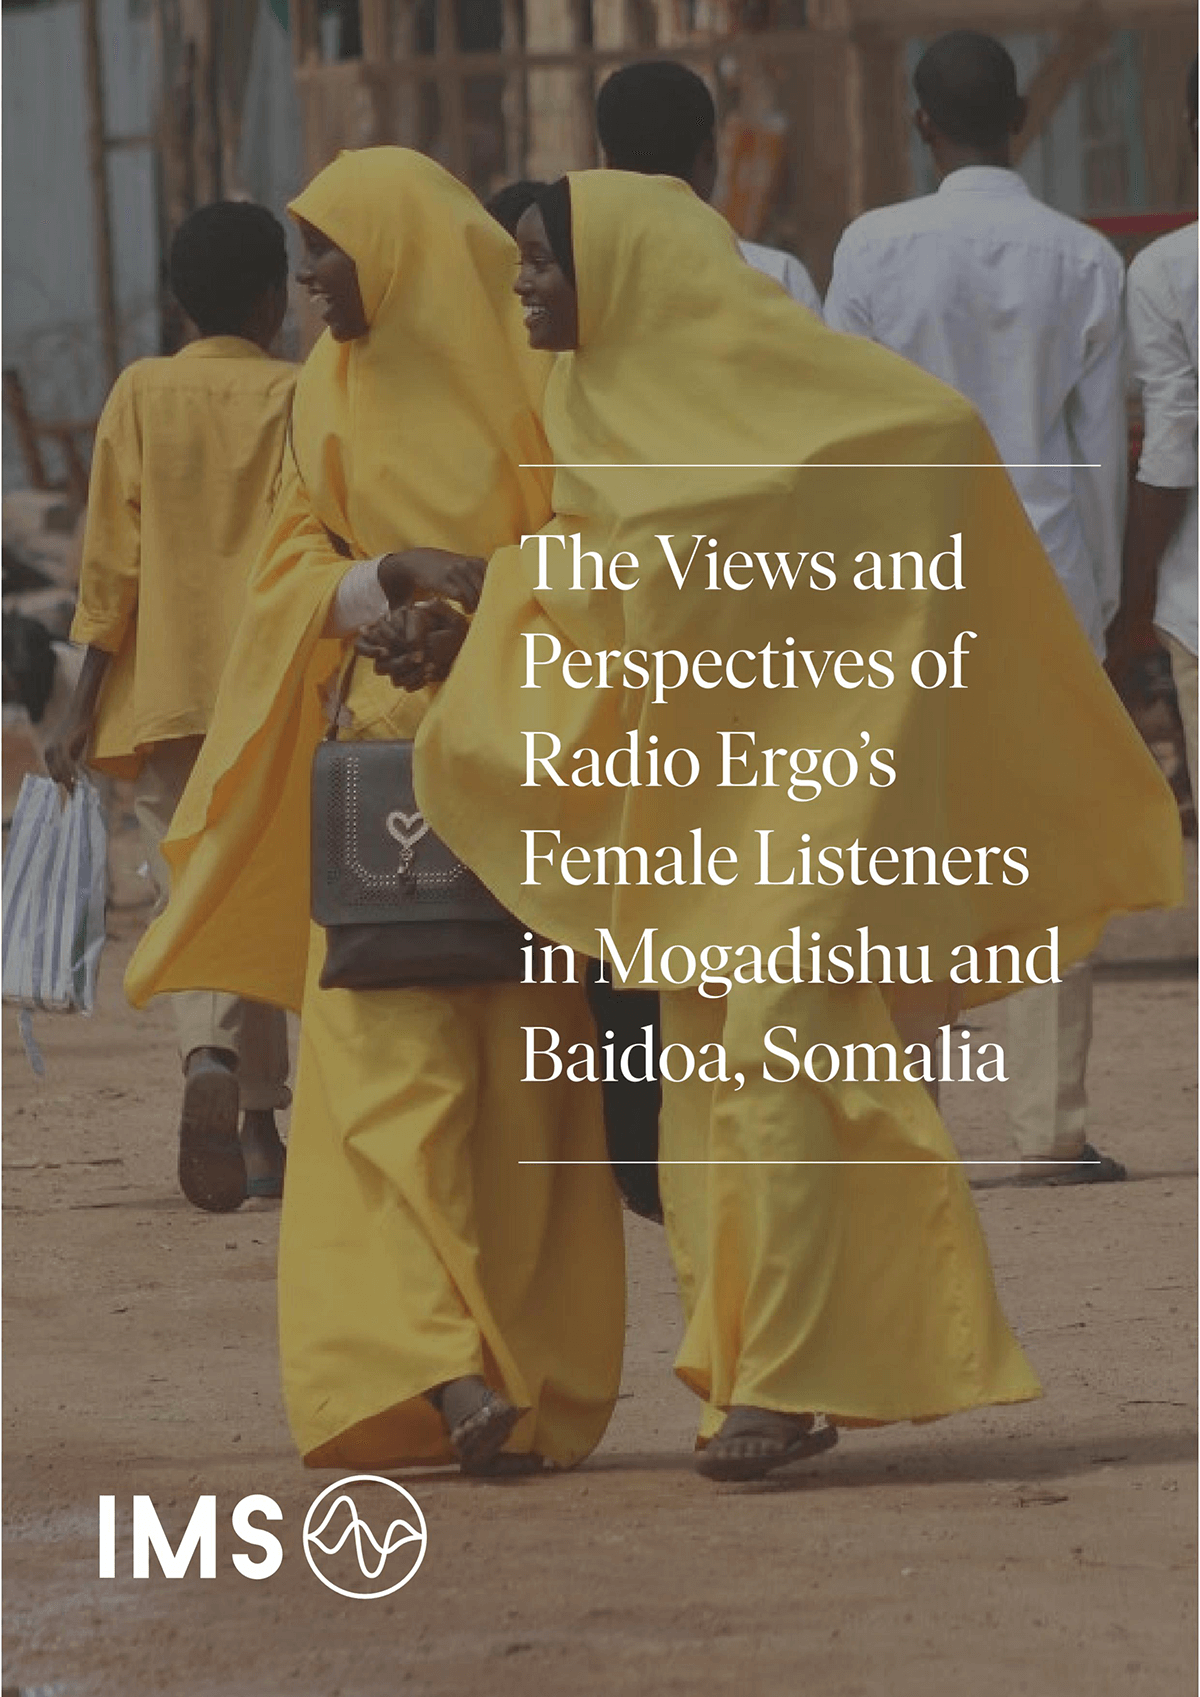 The Views and Perspectives of Radio Ergo's Female Listeners in Mogadishu and Baidoa, Somalia